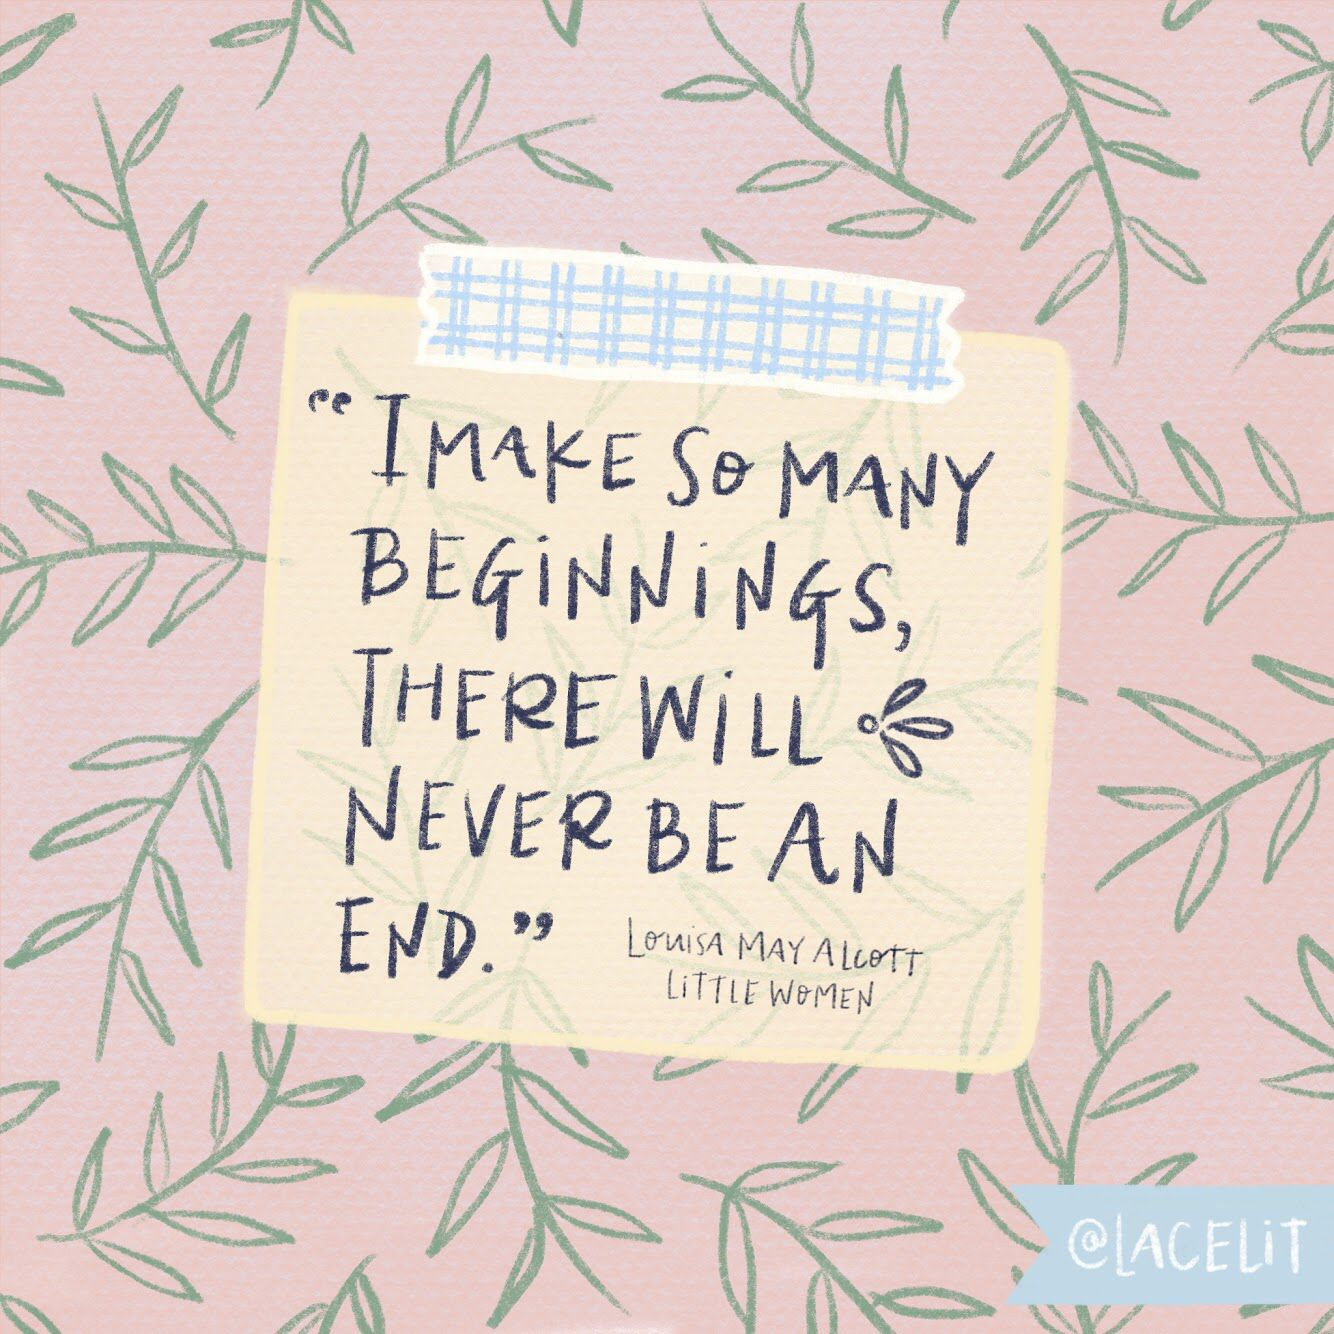 Illustrated Louisa May Alcott Quote By Kimberly Taylor Pestell Lacelit Com Lacelit Little Women Quotes Literary Quotes Book Quotes